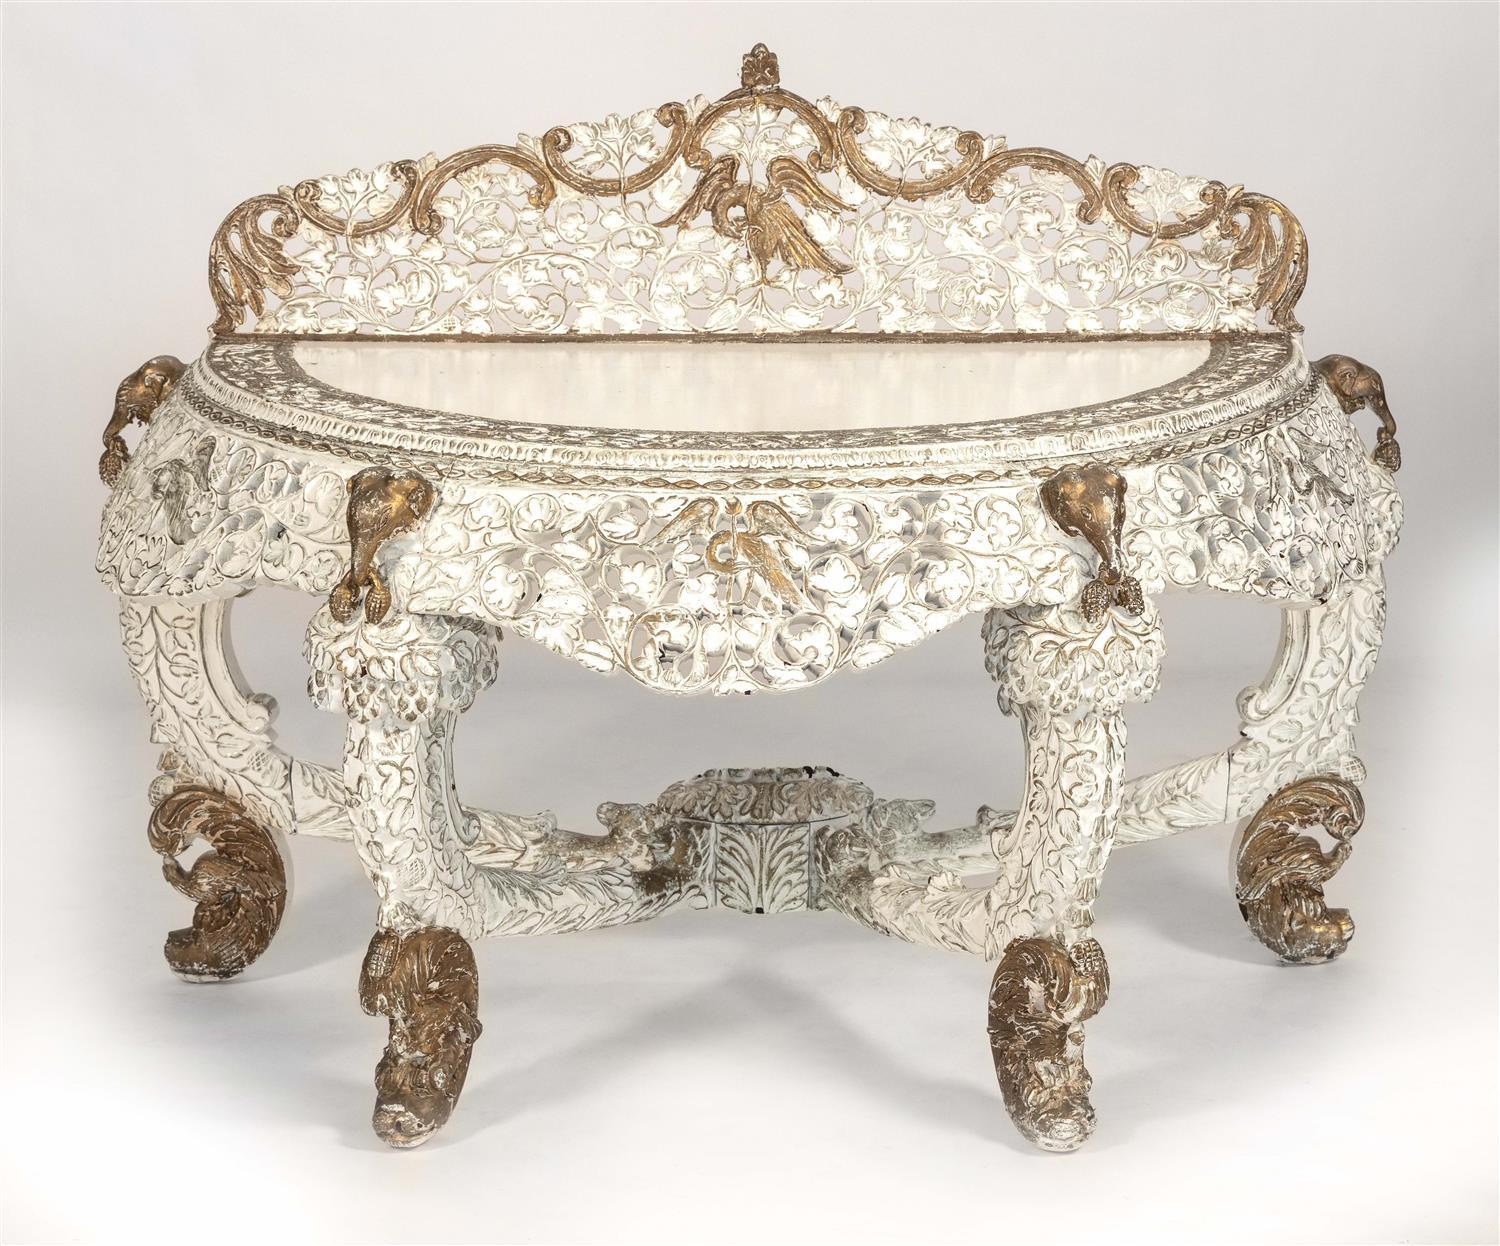 "HEAVILY AND ORNATELY CARVED DEMILUNE TABLE Painted white. Height 42"". Width 56"". Depth 29""."